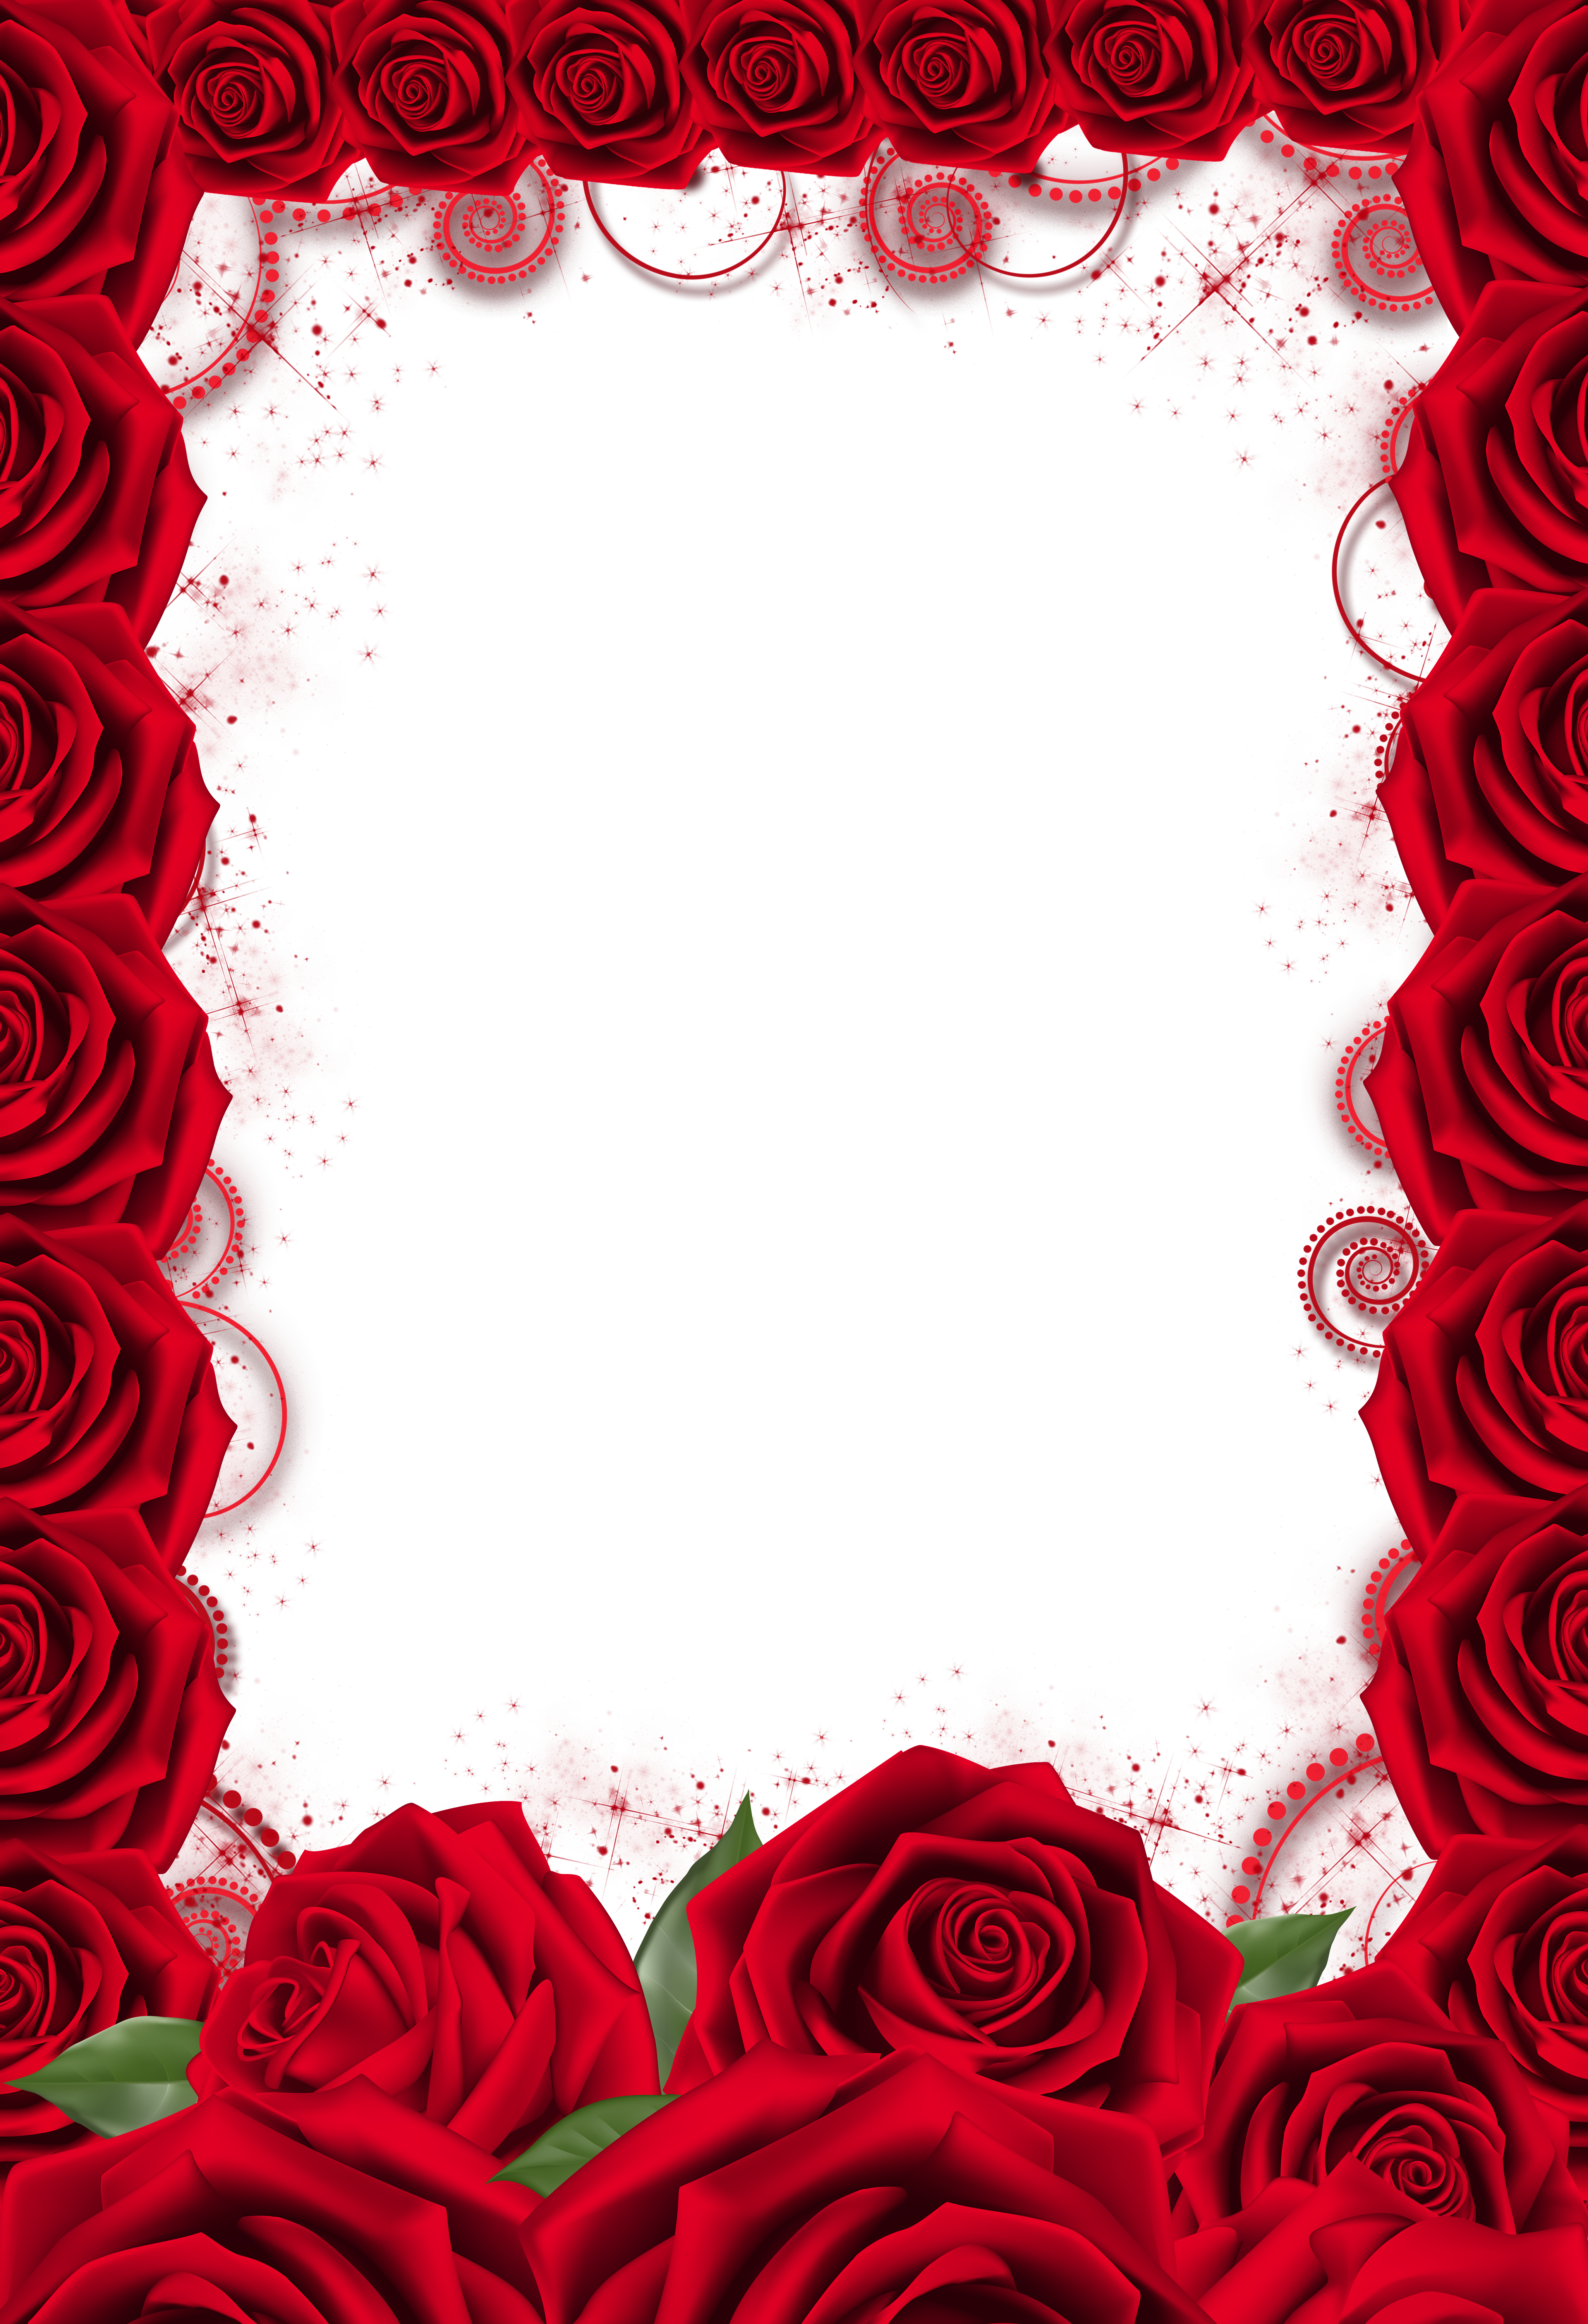 Red frame png. Rose transparent gallery yopriceville